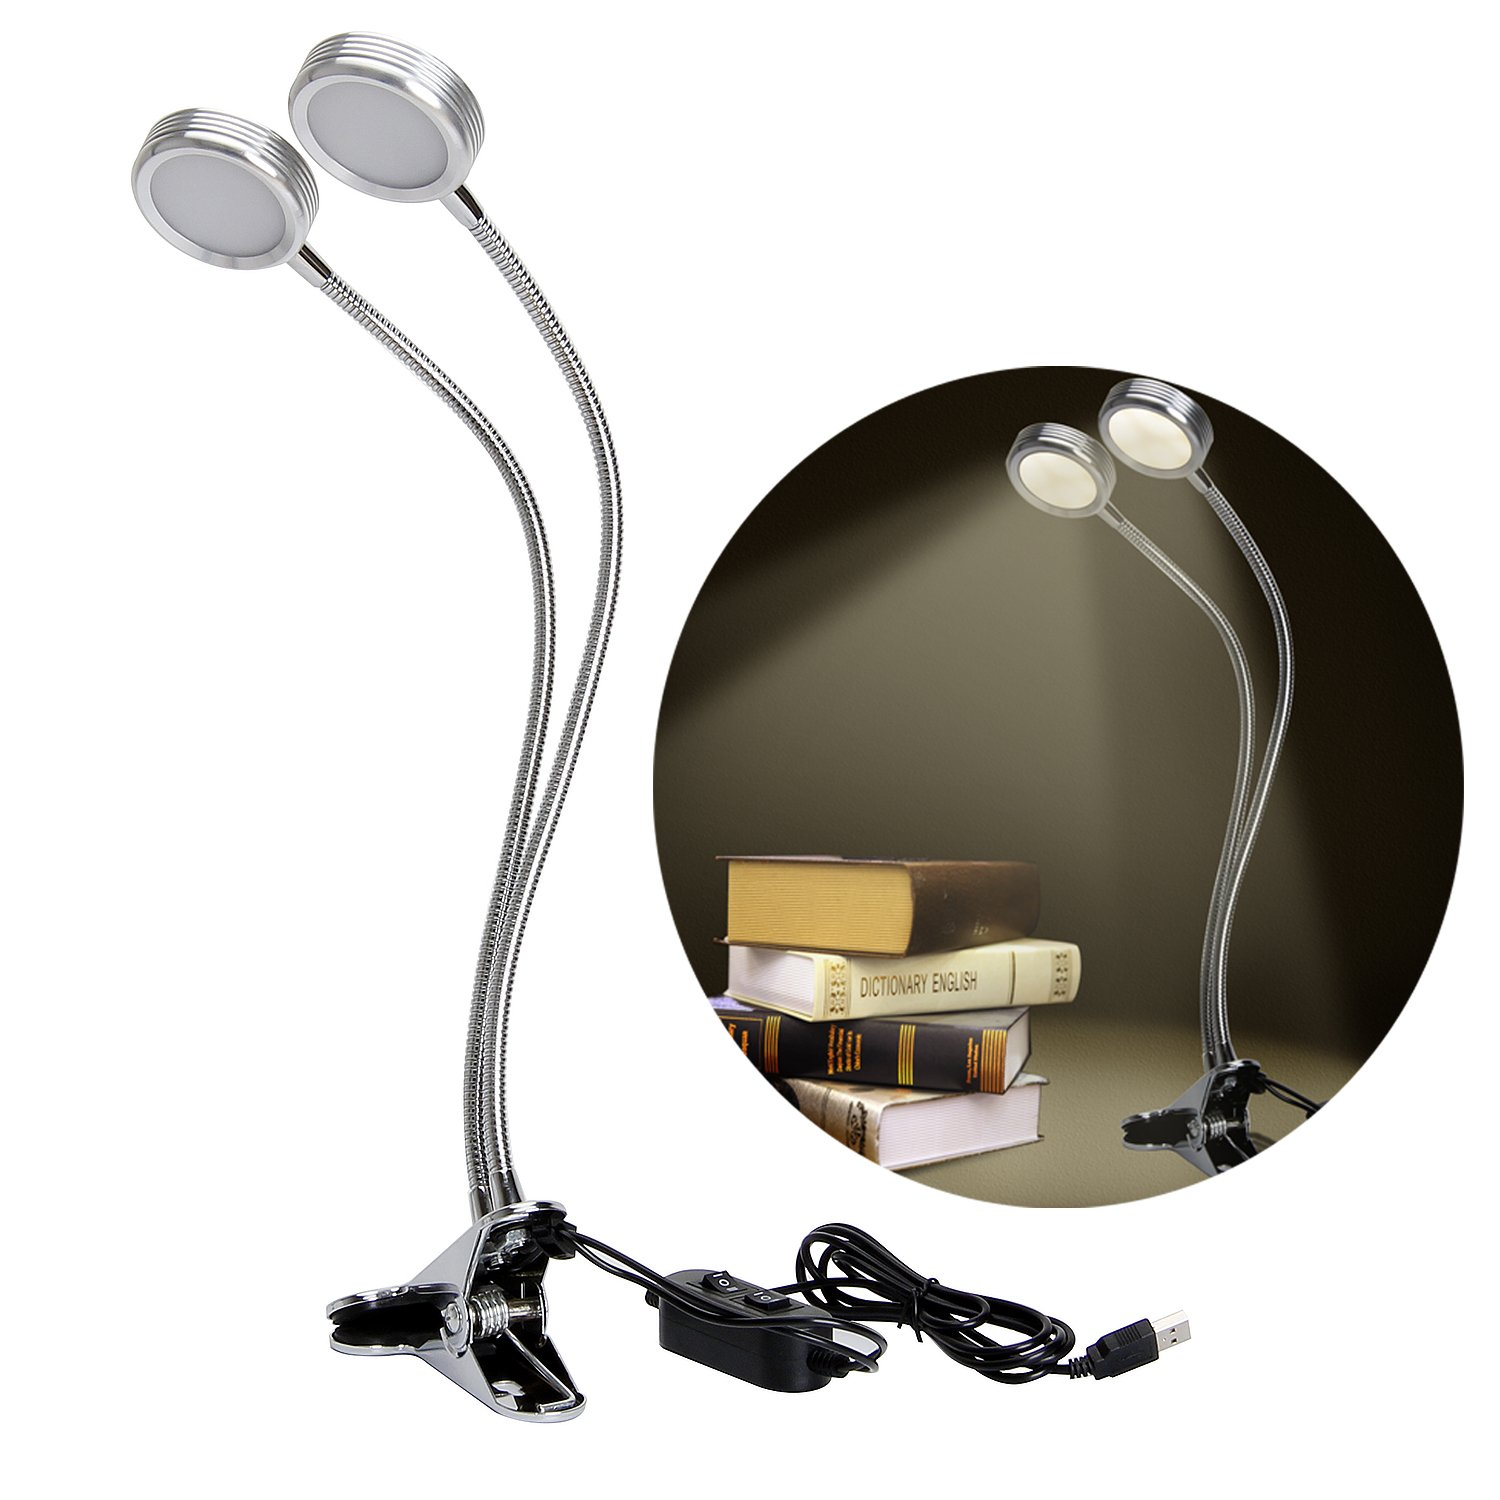 Dual Head USB Led Clip on Light, 2 Dimming Levels Eye-caring light Lamp with on/off Switch and Flexible Aluminum Gooseneck for Bed reading Studying working(Art Works Show Accent Light)-Warm White YUHAN YH#D0035